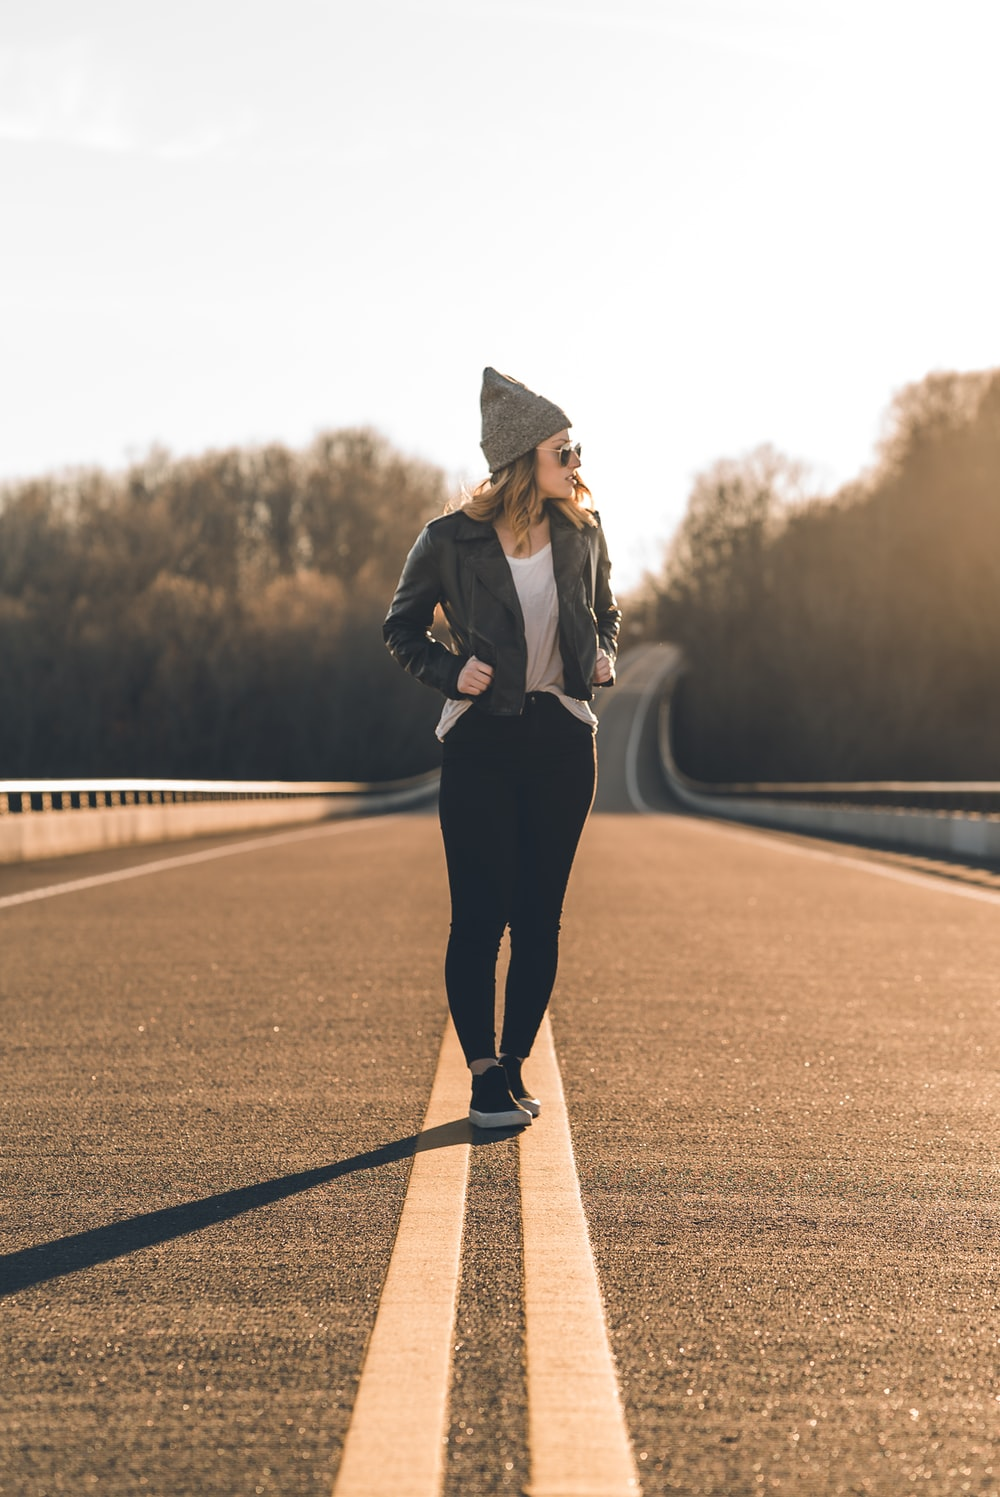 woman in black coat and black pants standing on road during daytime